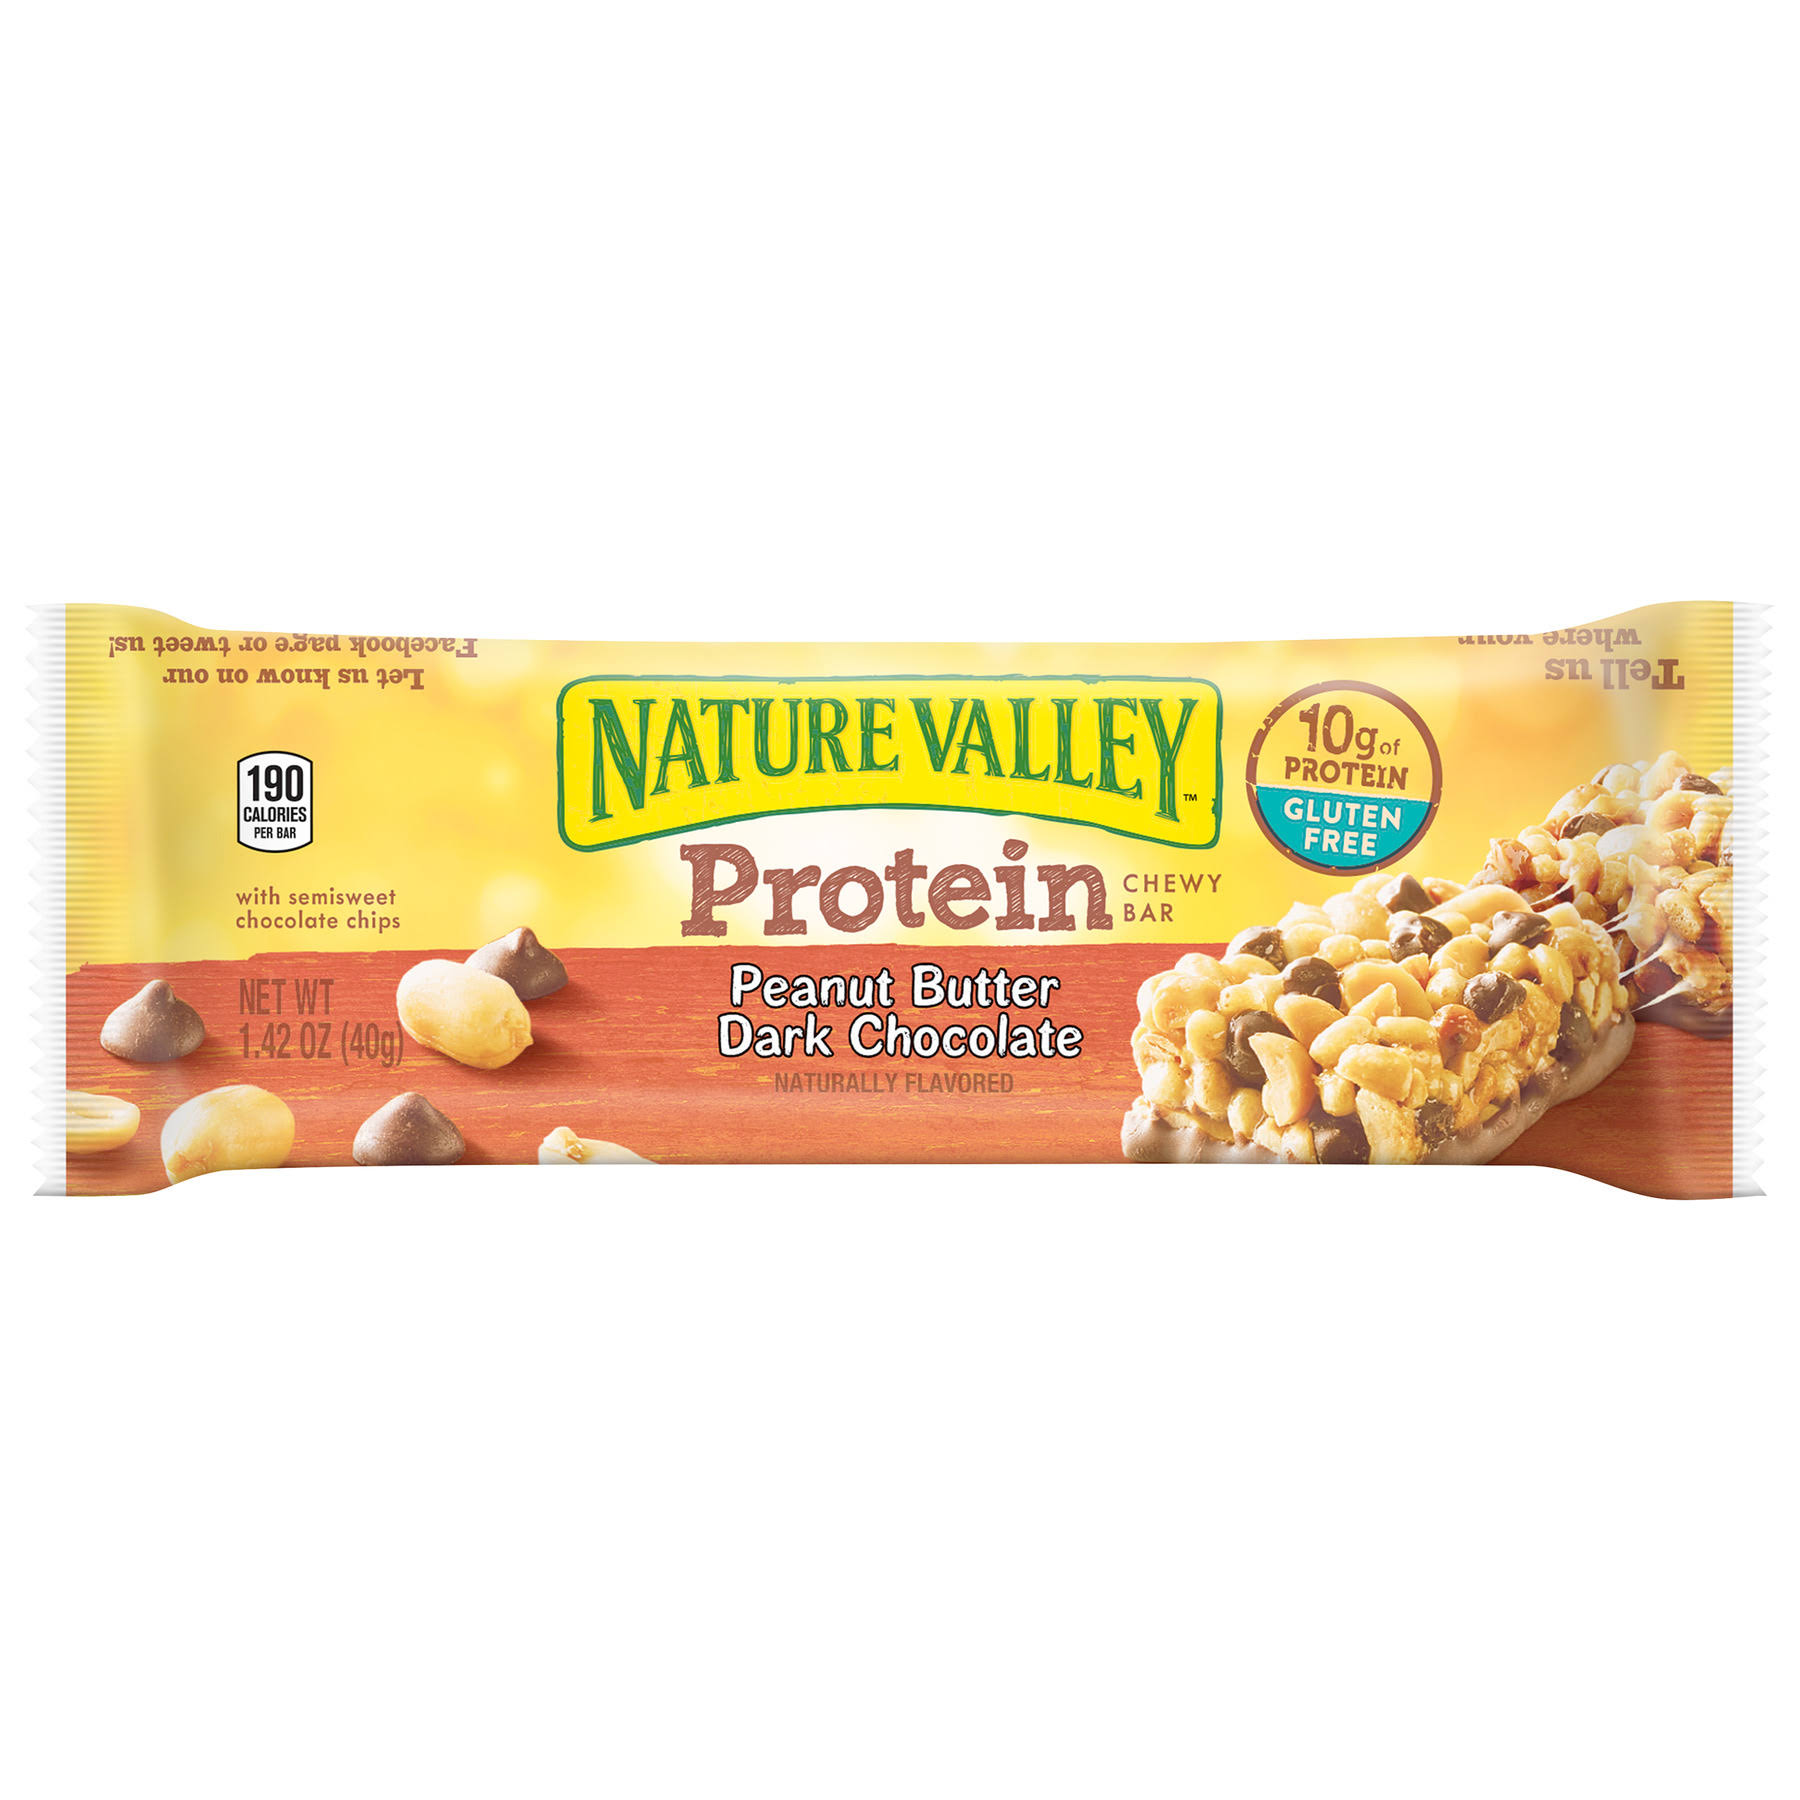 Nature Valley Protein Chewy Bar - Peanut Butter & Dark Chocolate